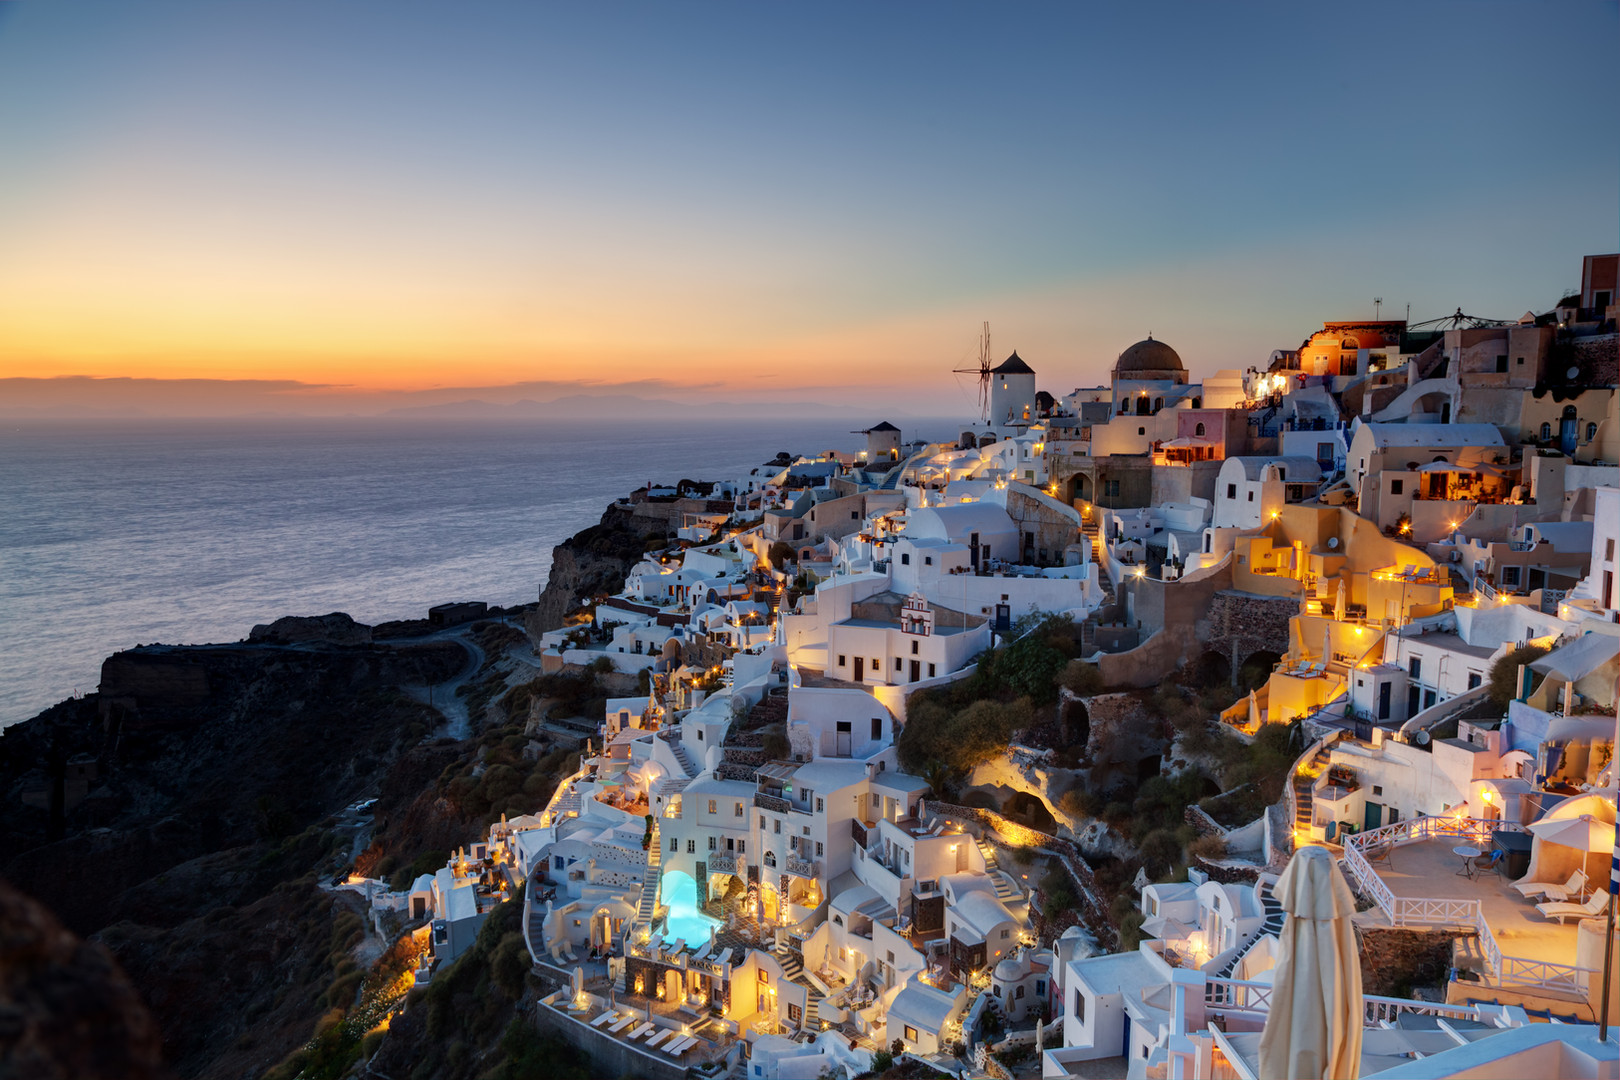 oia-town-on-santorini-island-greece-at-s